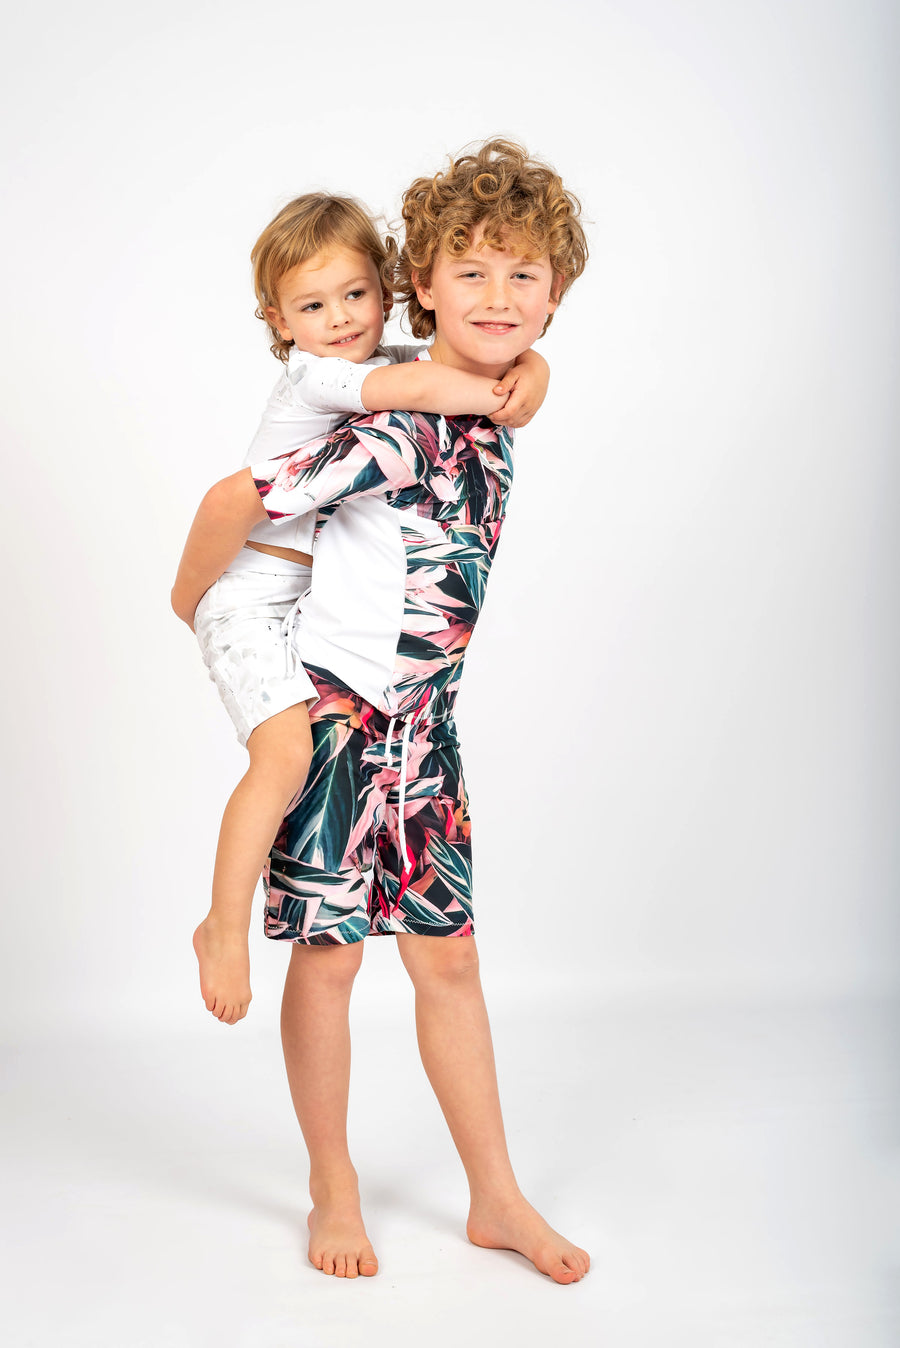 Ethical and sustainable swimwear for baby boy, toddler to tween boy, recycled ECONYL swim board short made in Australia.